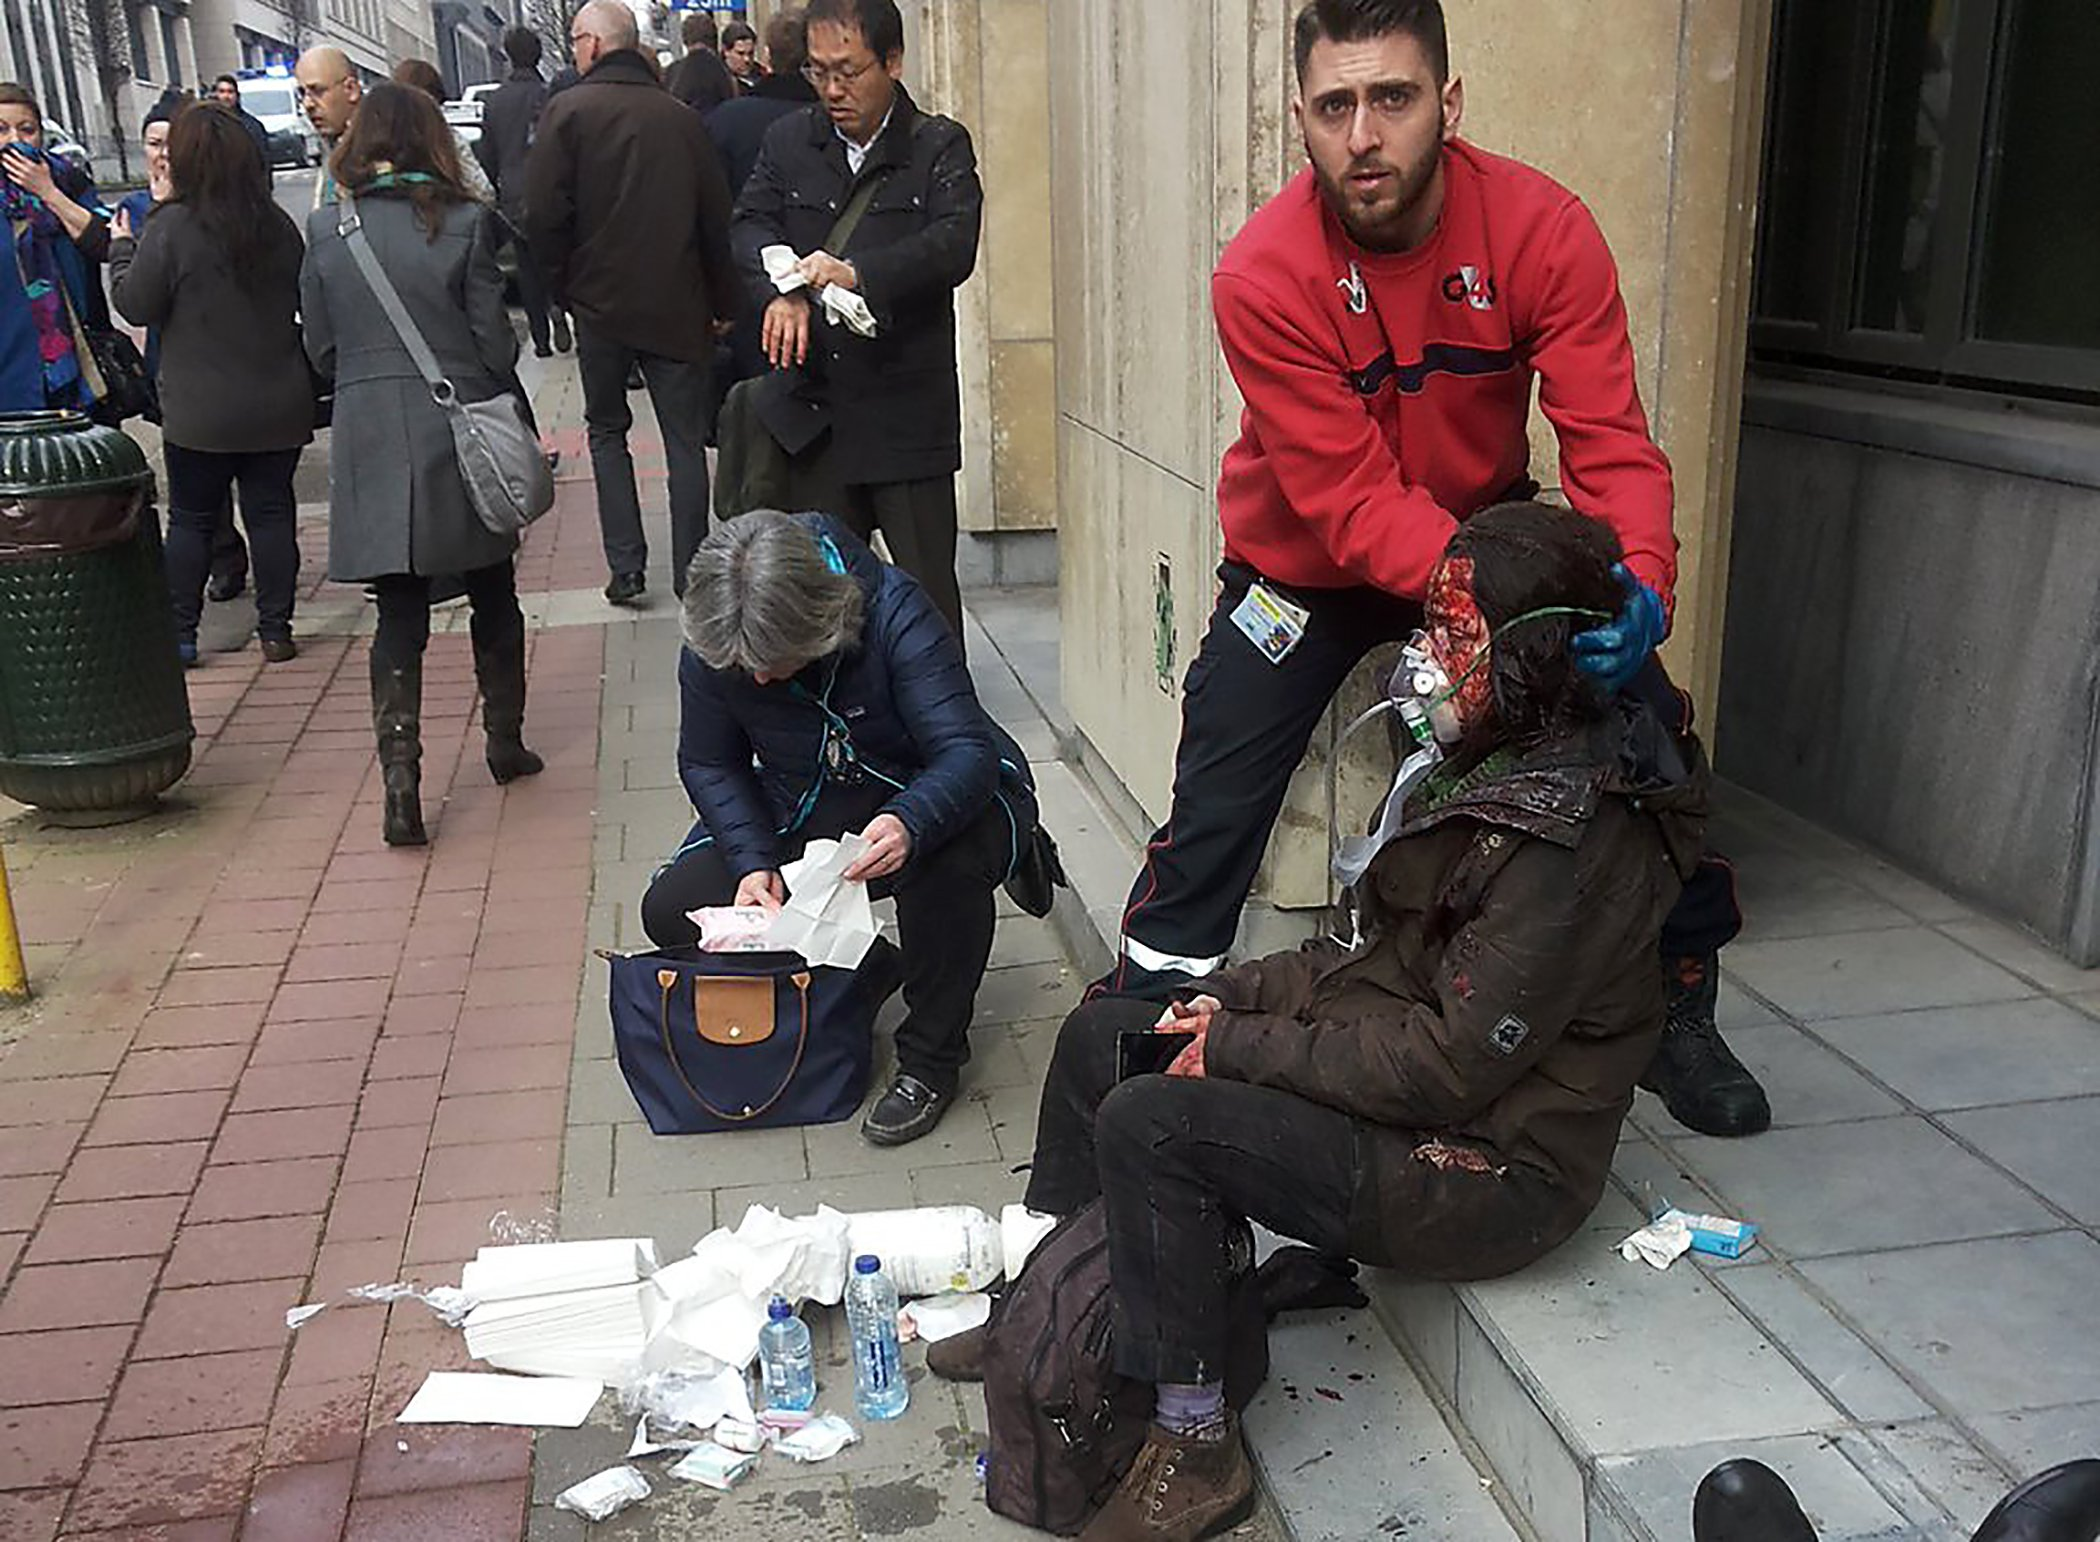 A private security guard helps a wounded women outside the Maalbeek metro station after a blast at this station located near the EU institutions, in Brussels on March 21, 2016.